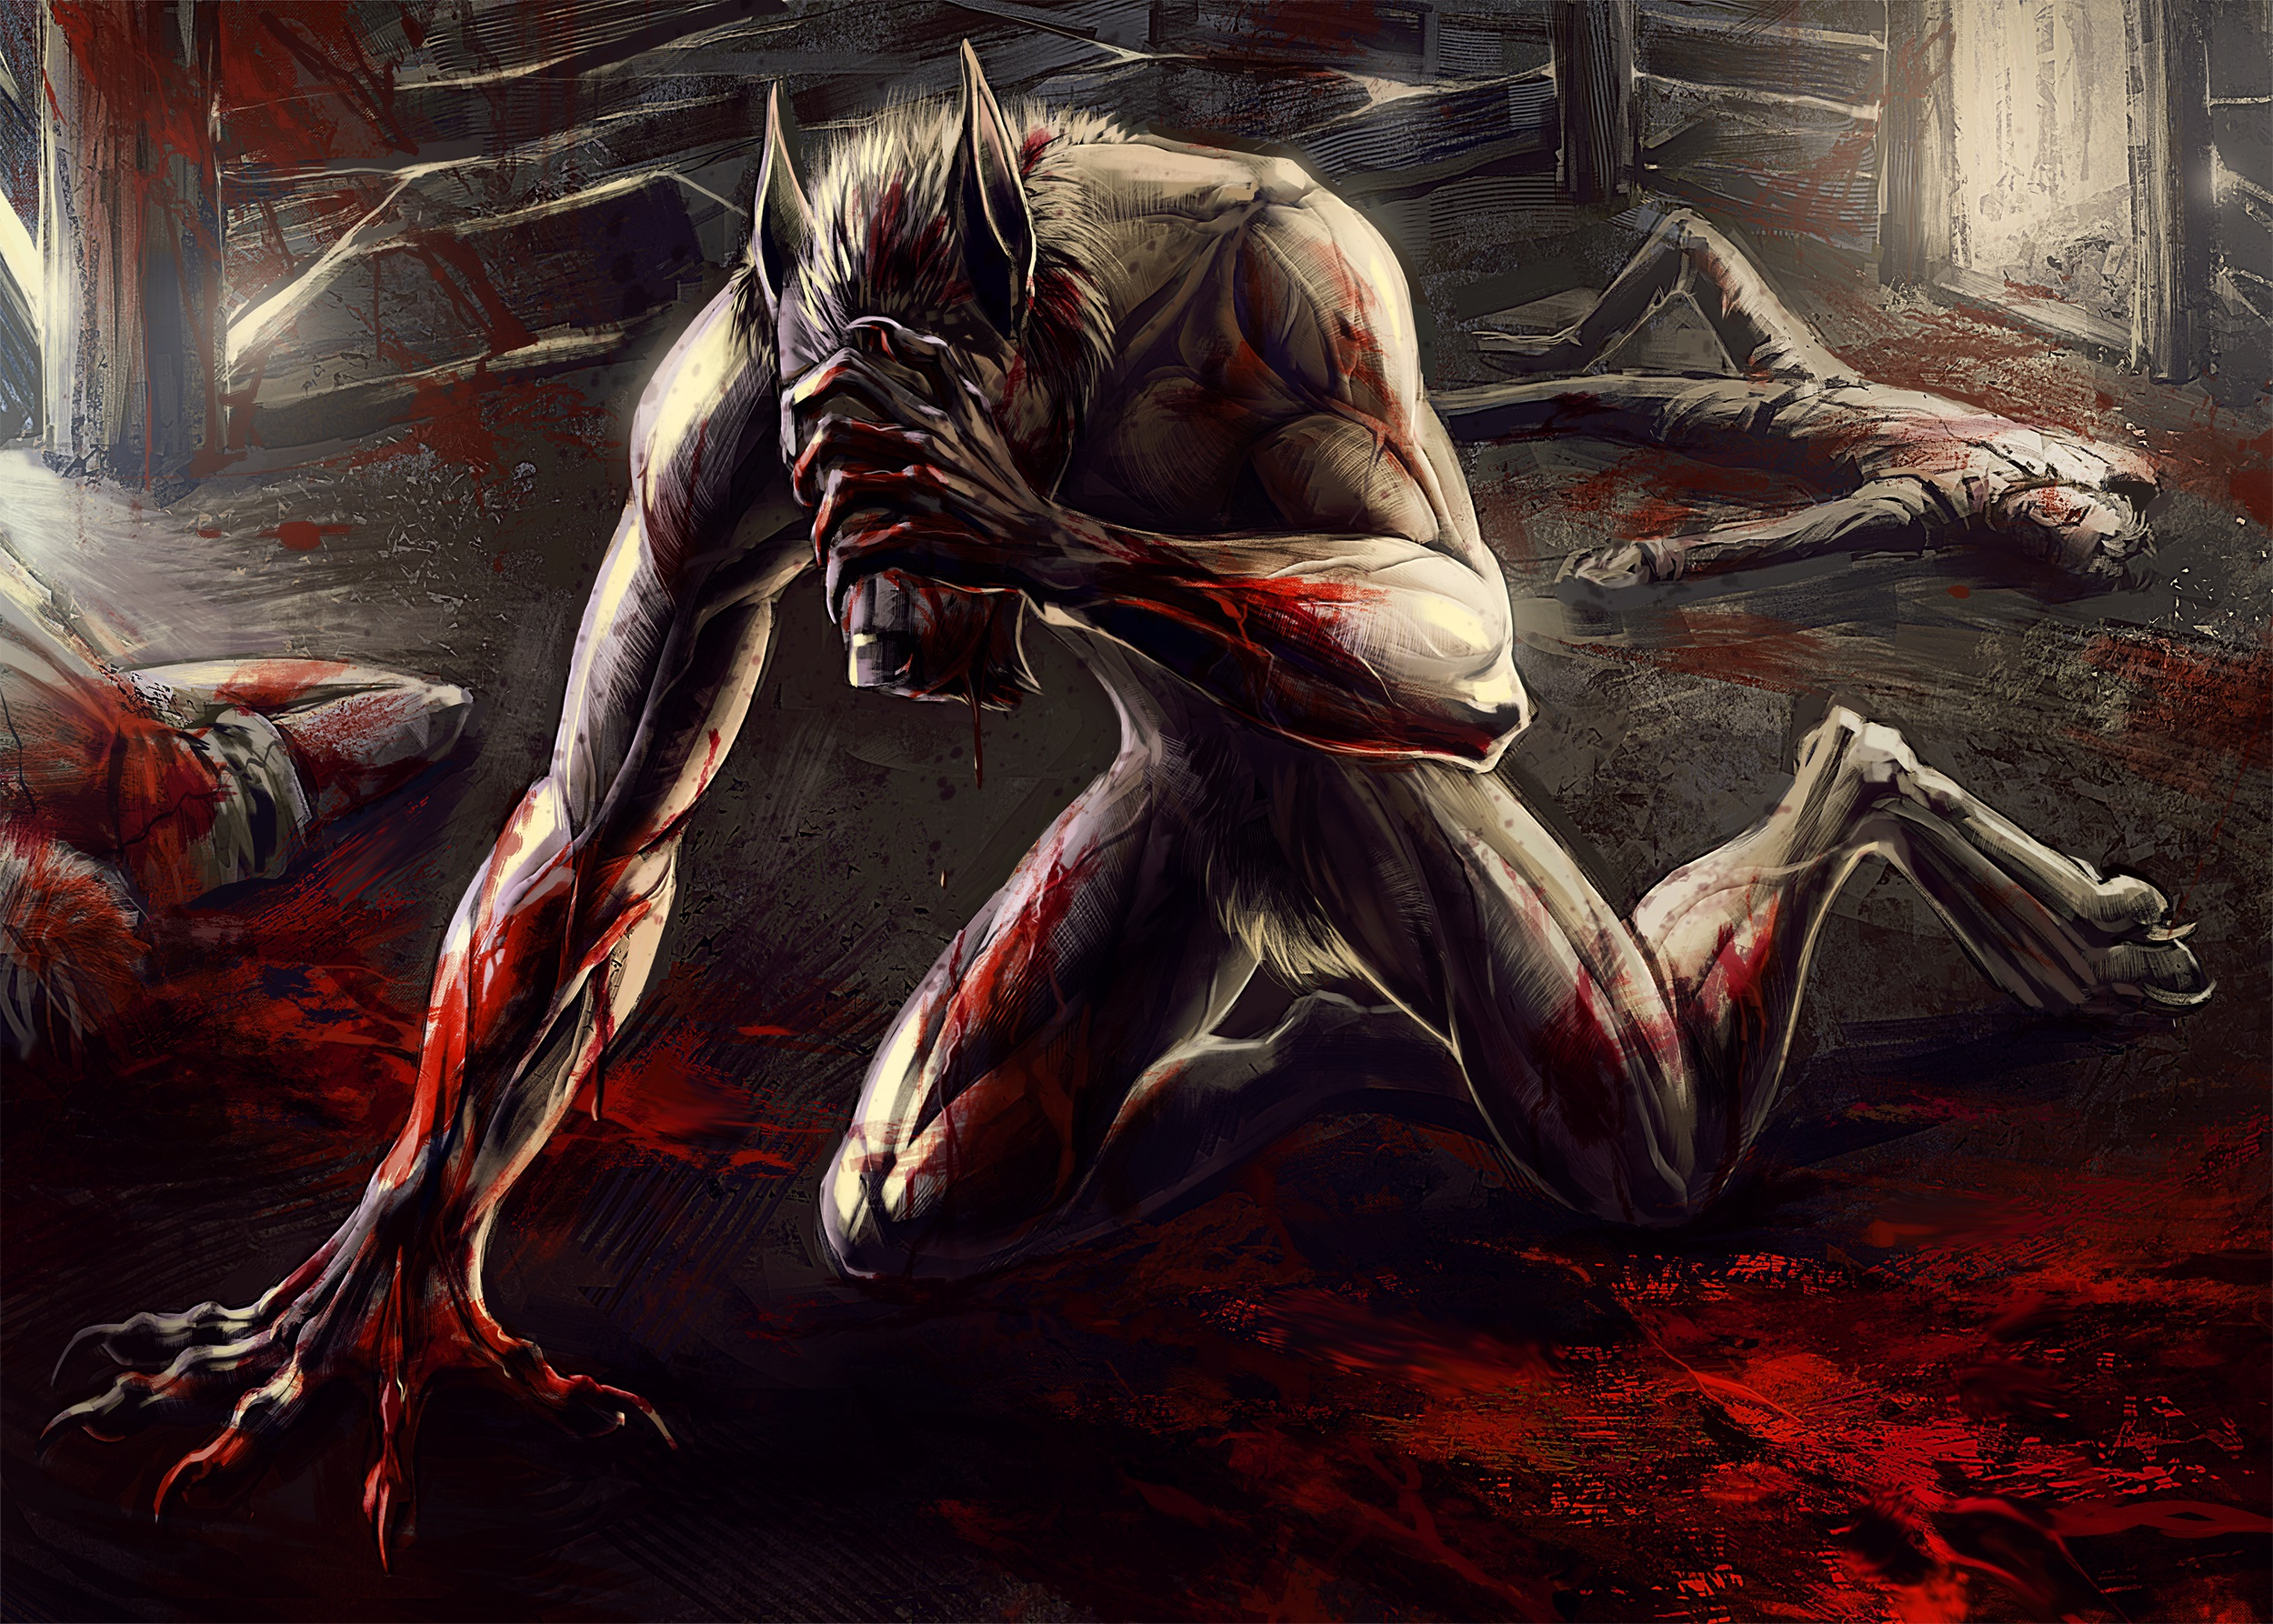 Image Monster Lycanthrope Blood Dead Cadaver Corpse 2500x1786